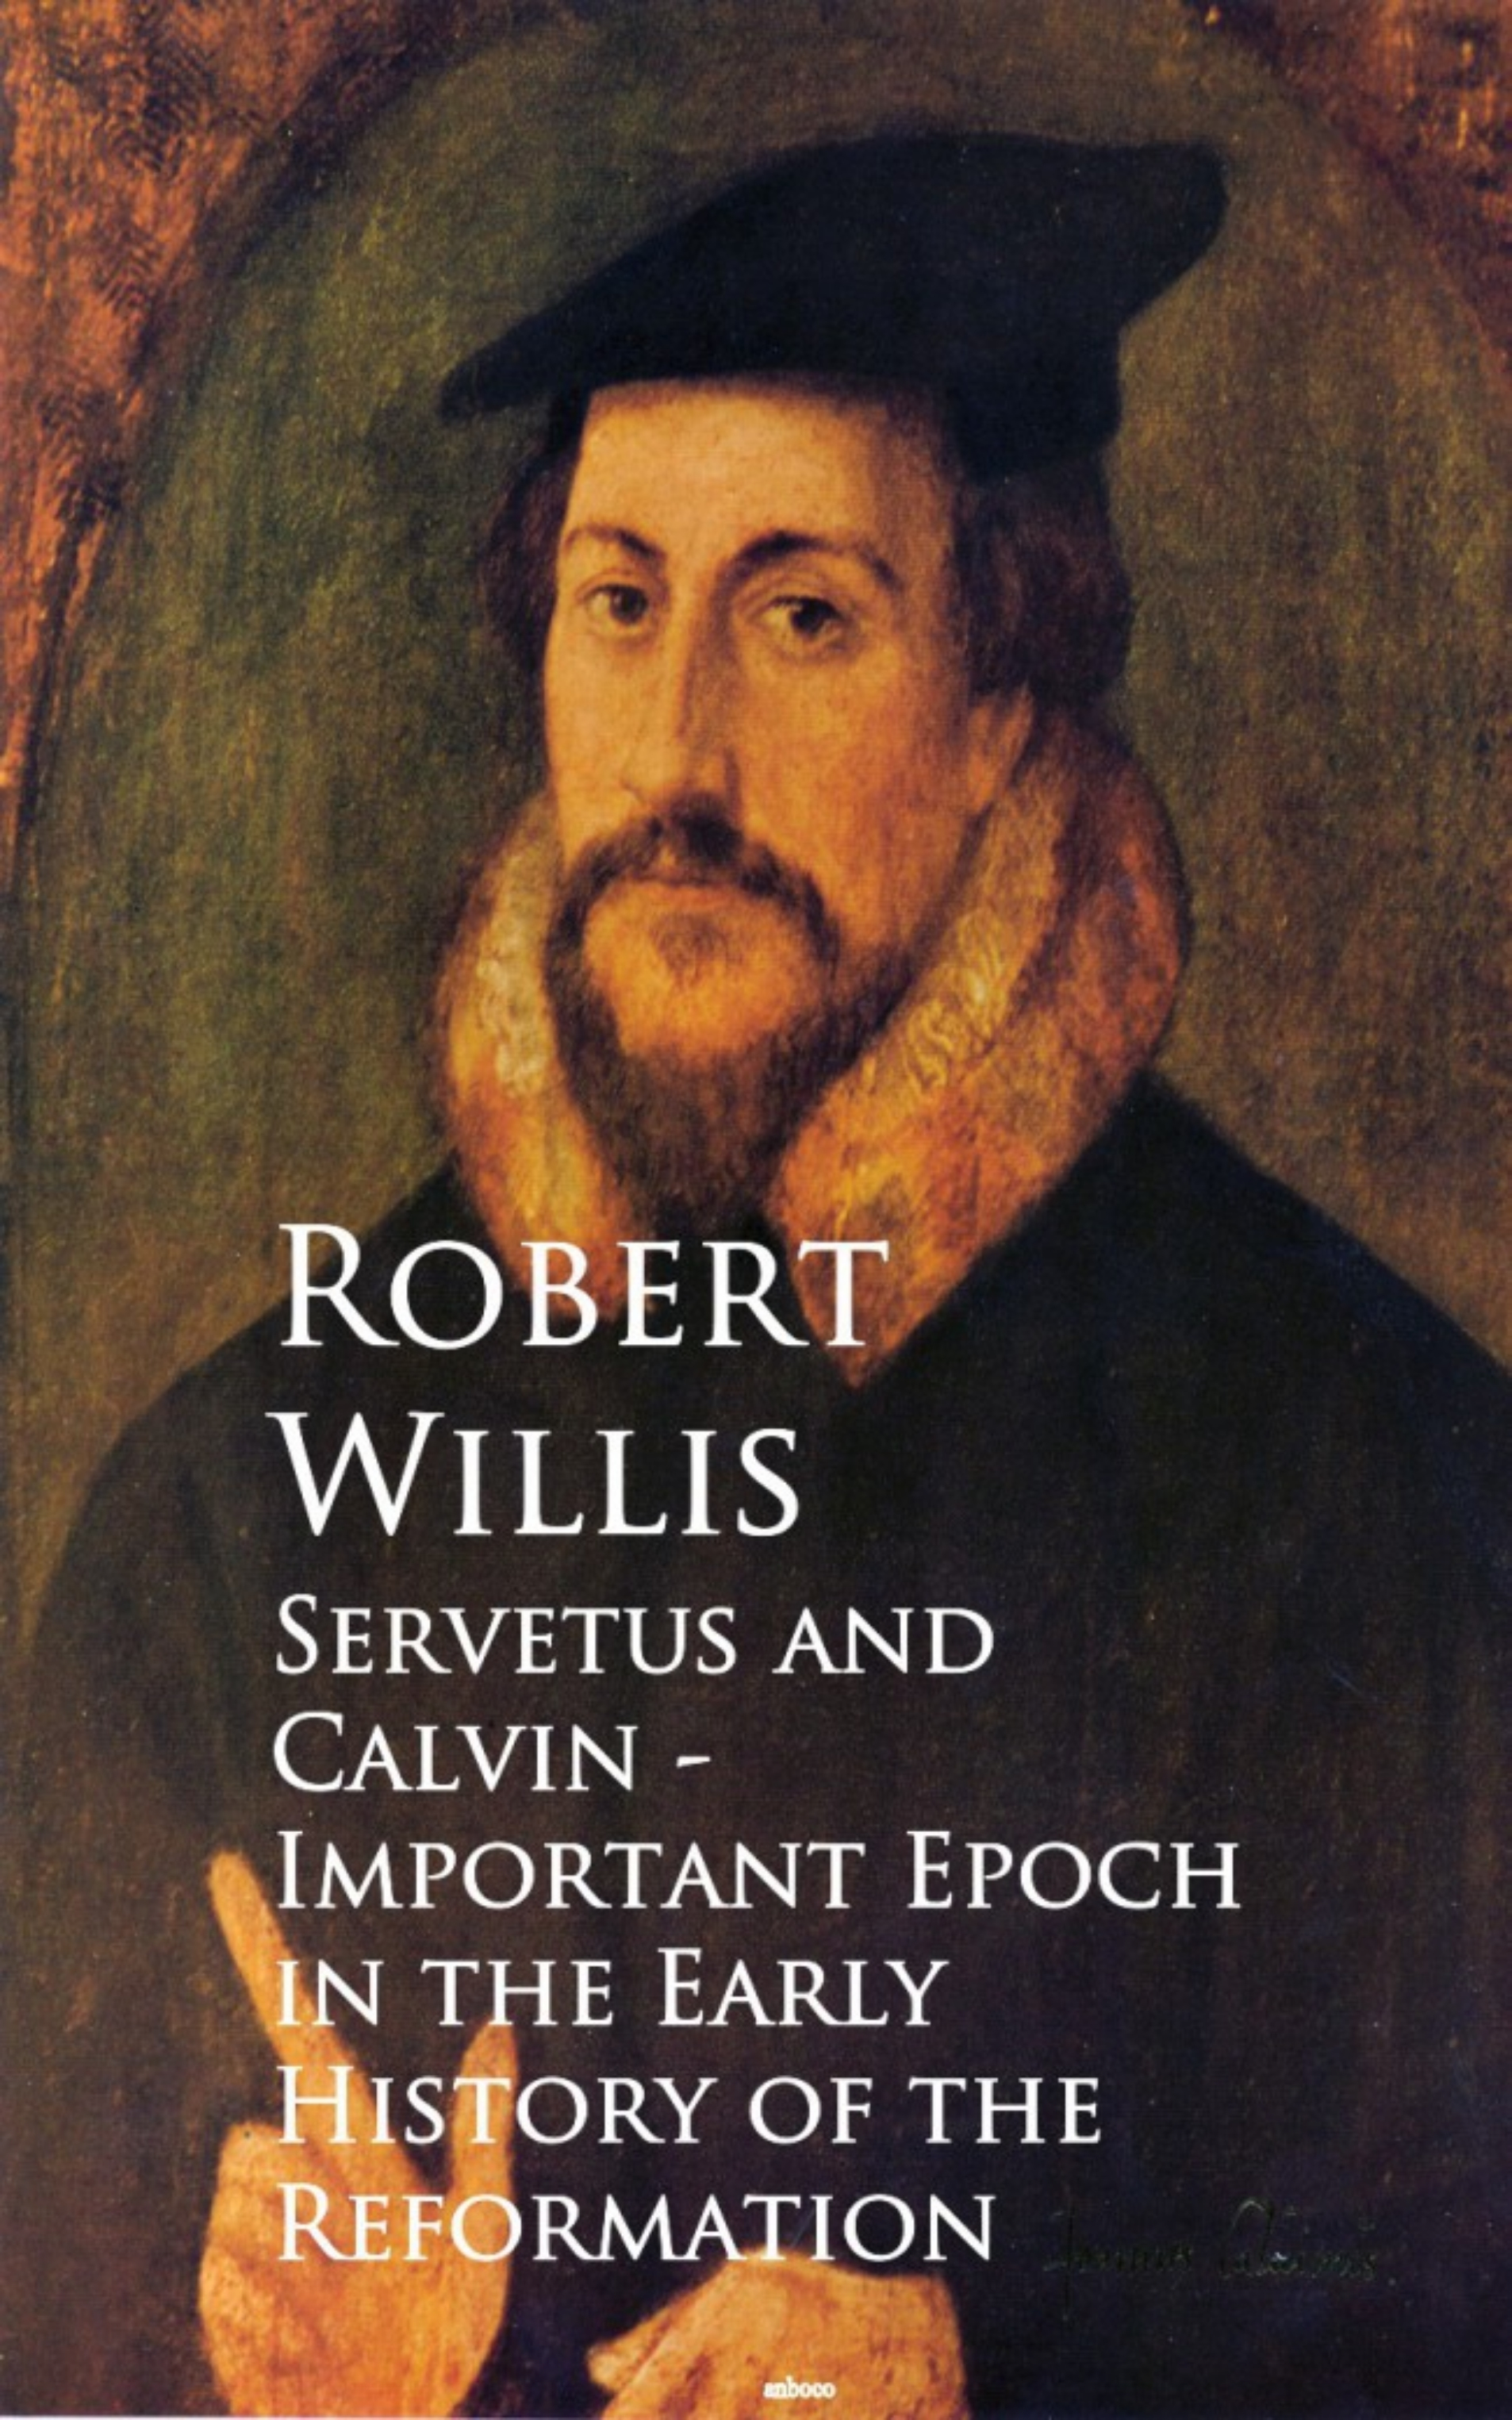 Robert Willis Servetus and Calvin - Important Epoch in the Early History of the Reformation aubrey lackington moore lectures and papers on the history of the reformation in england and on the